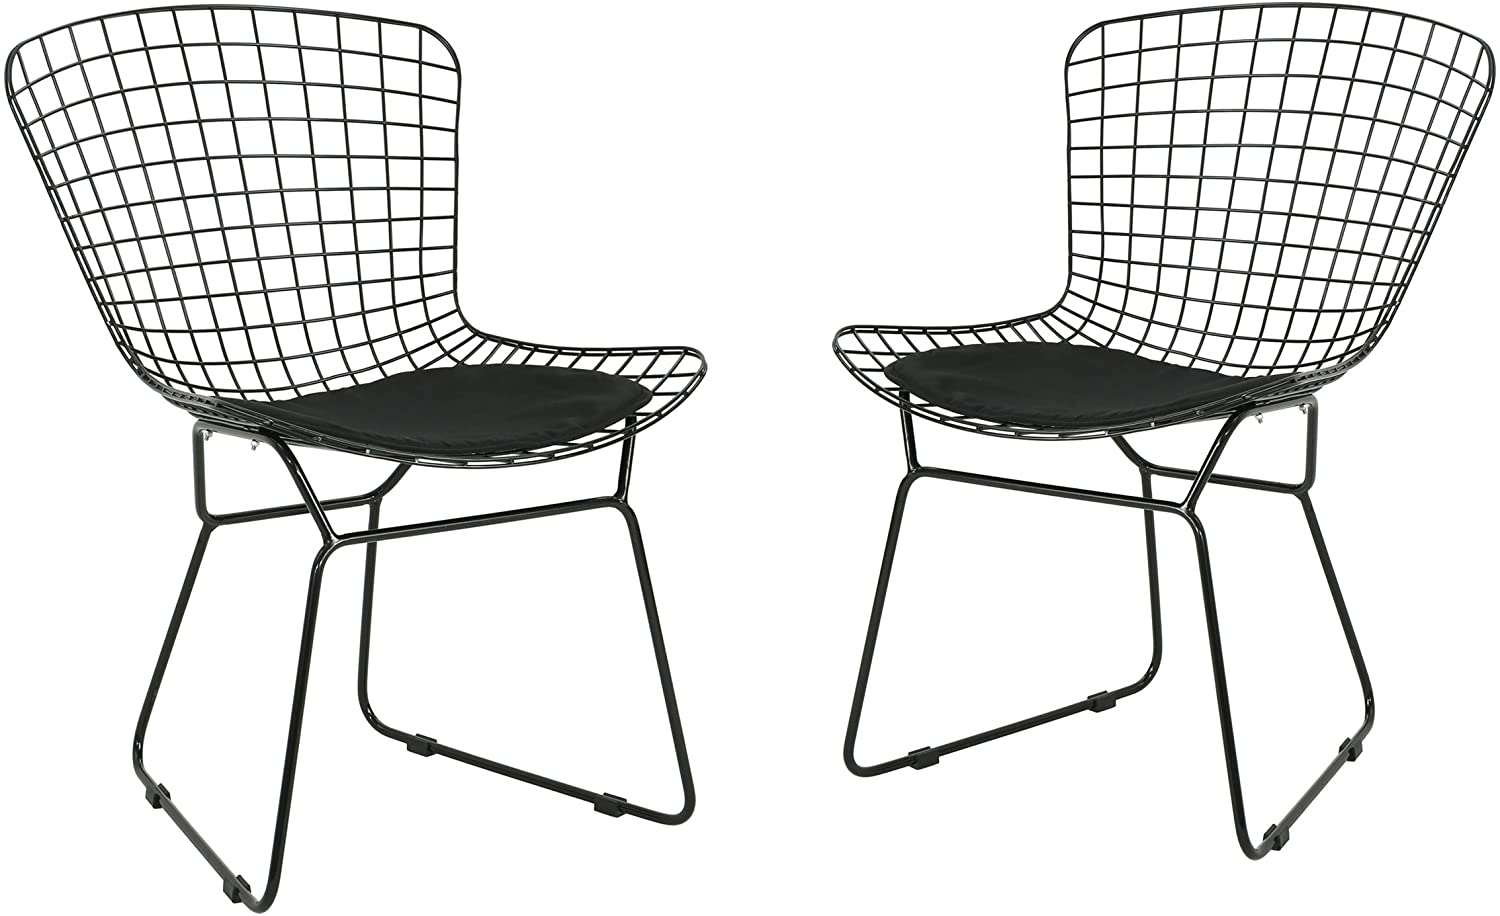 Christopher Knight Home 305072 Fonda Outdoor Iron Chairs (Set of 2), Black